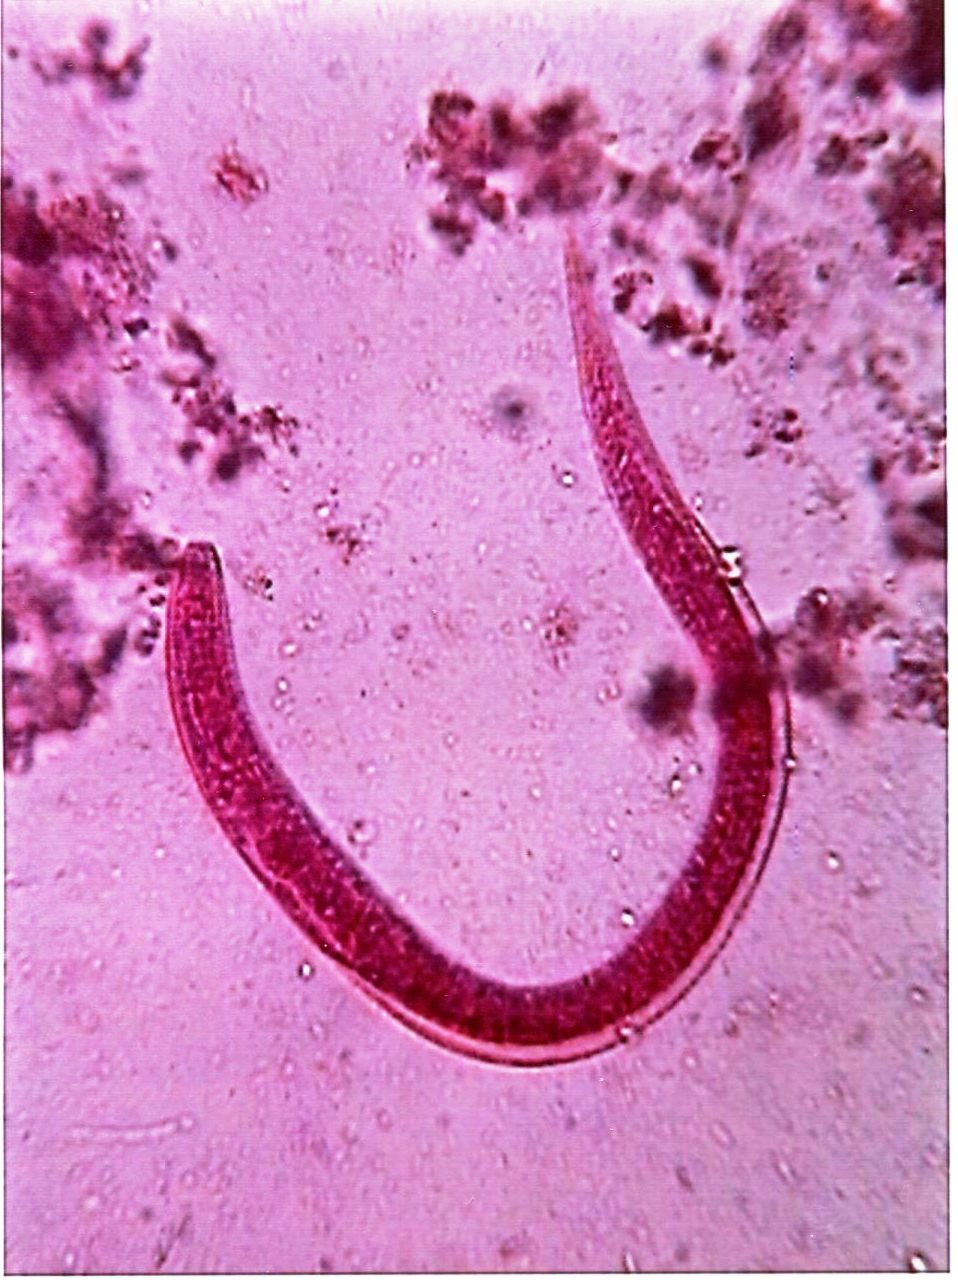 Strongyloides stercoralis (threadworm) larva